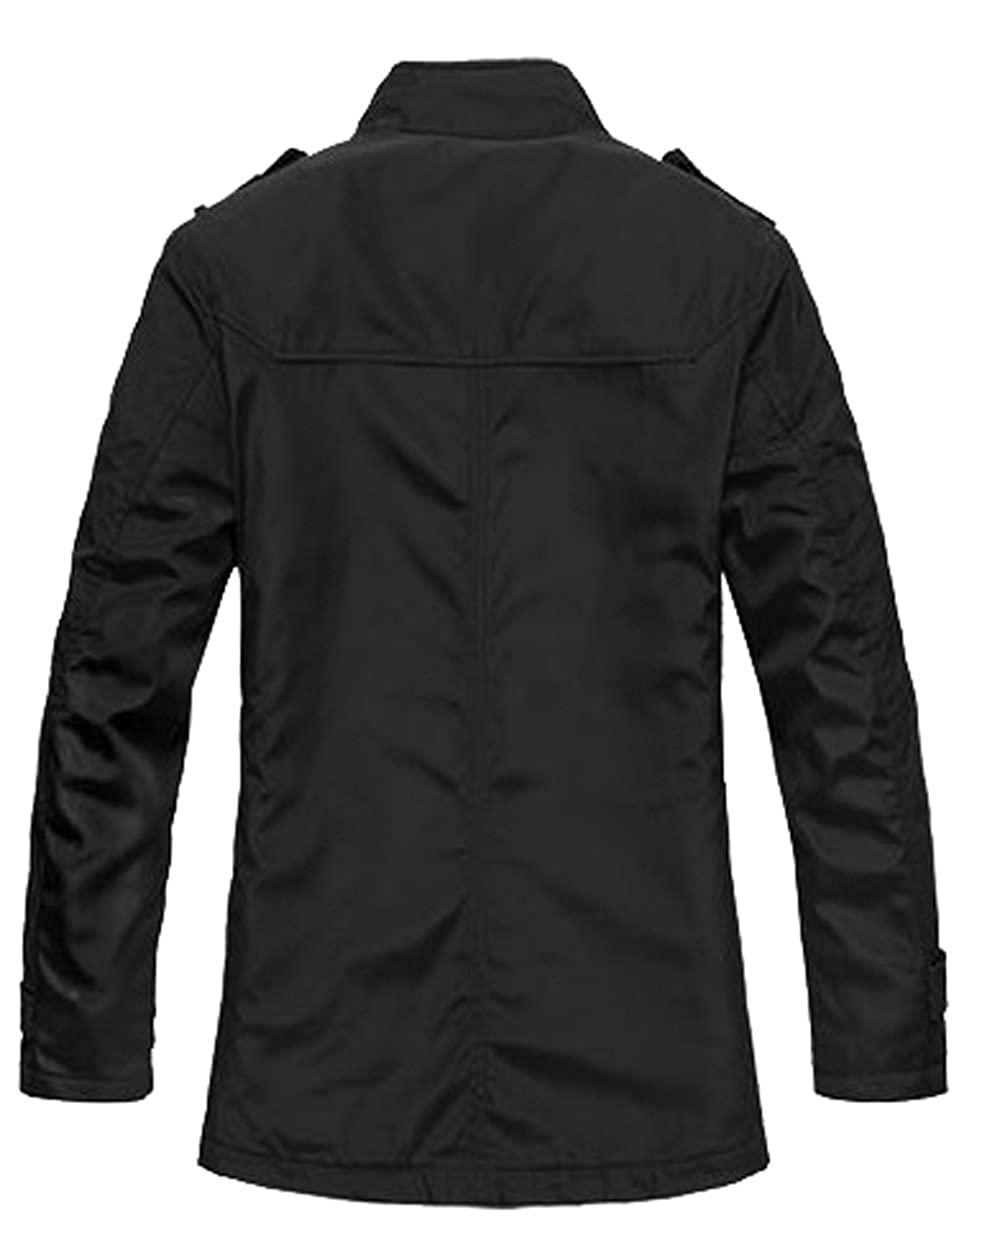 WantDo Men's Fashion Cotton Jacket Waterproof Coat for Slim Person at Amazon Men�s Clothing store